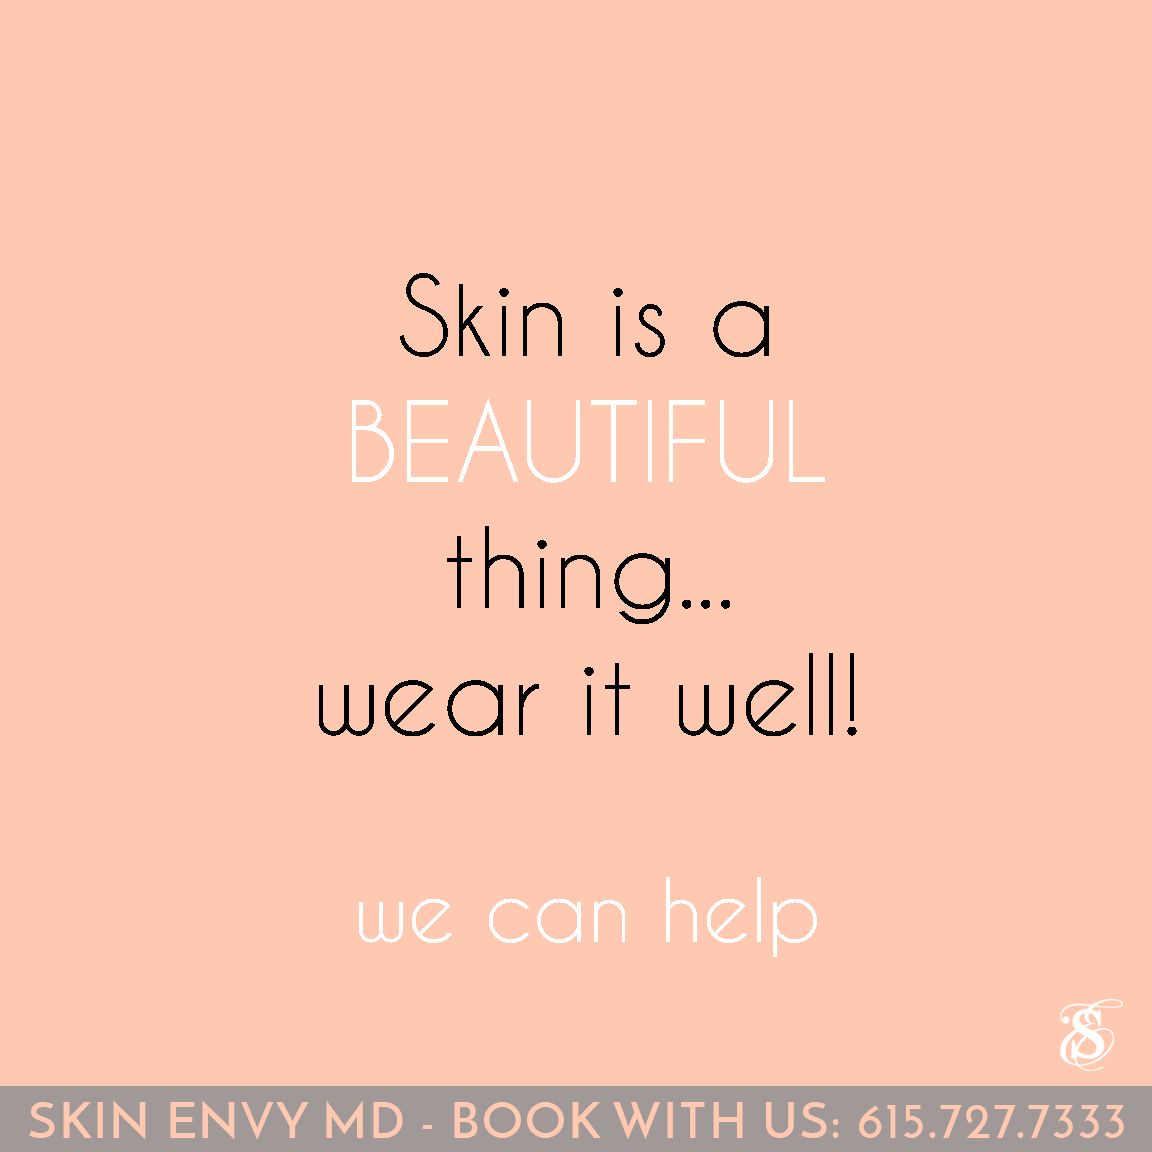 Skin is a BEAUTIFUL Thing - Wear it Well - We Can Help - Skin Care by Skin Envy Nashville.png